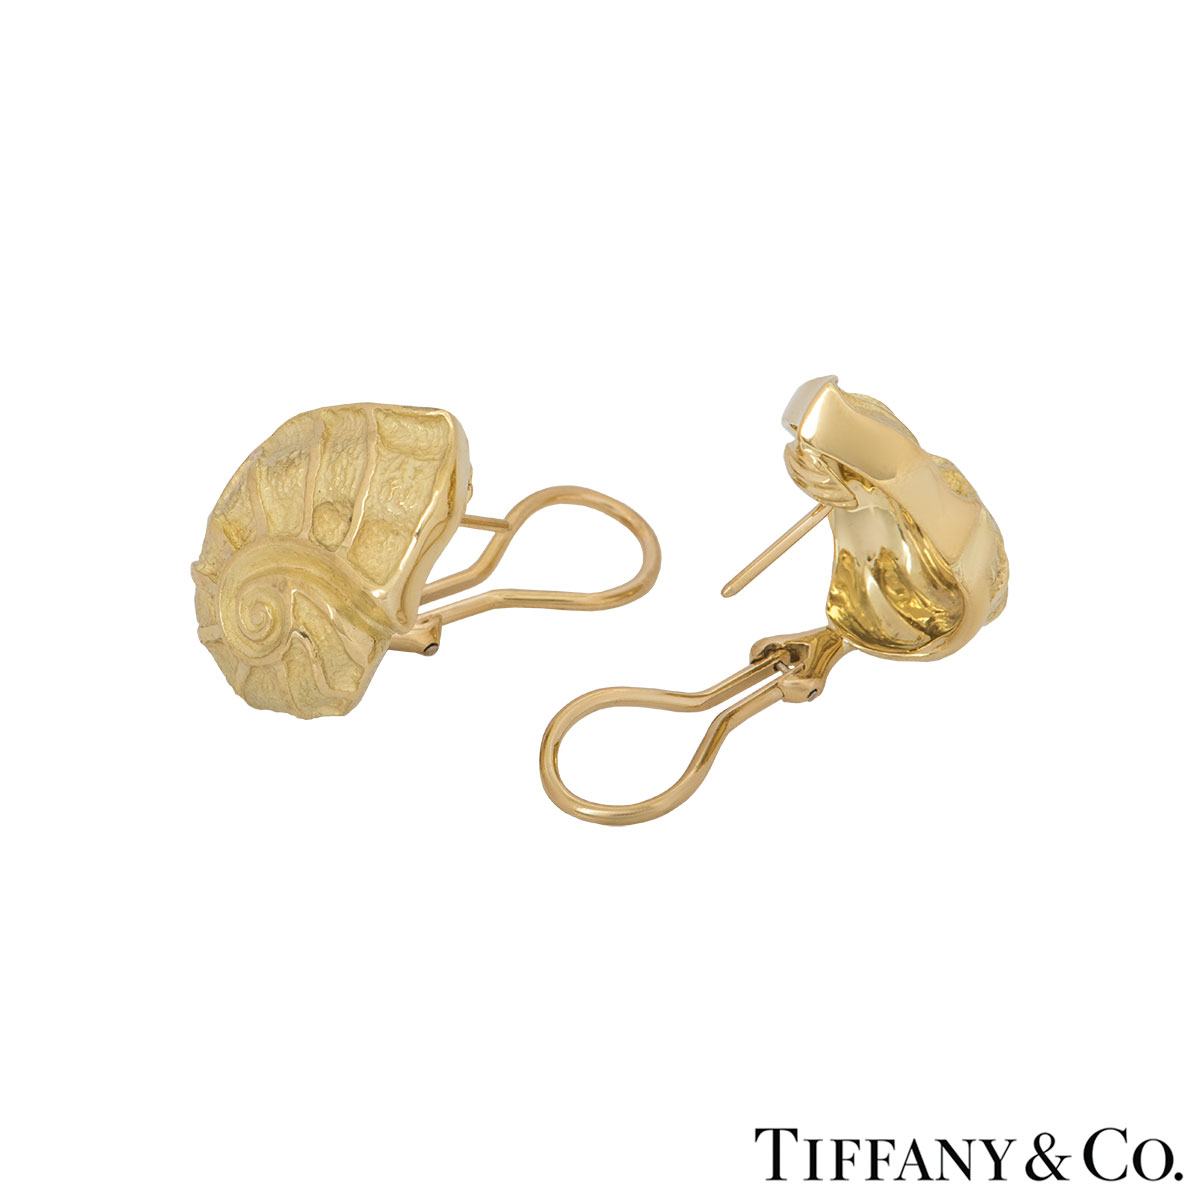 Tiffany & Co. Yellow Gold Earrings